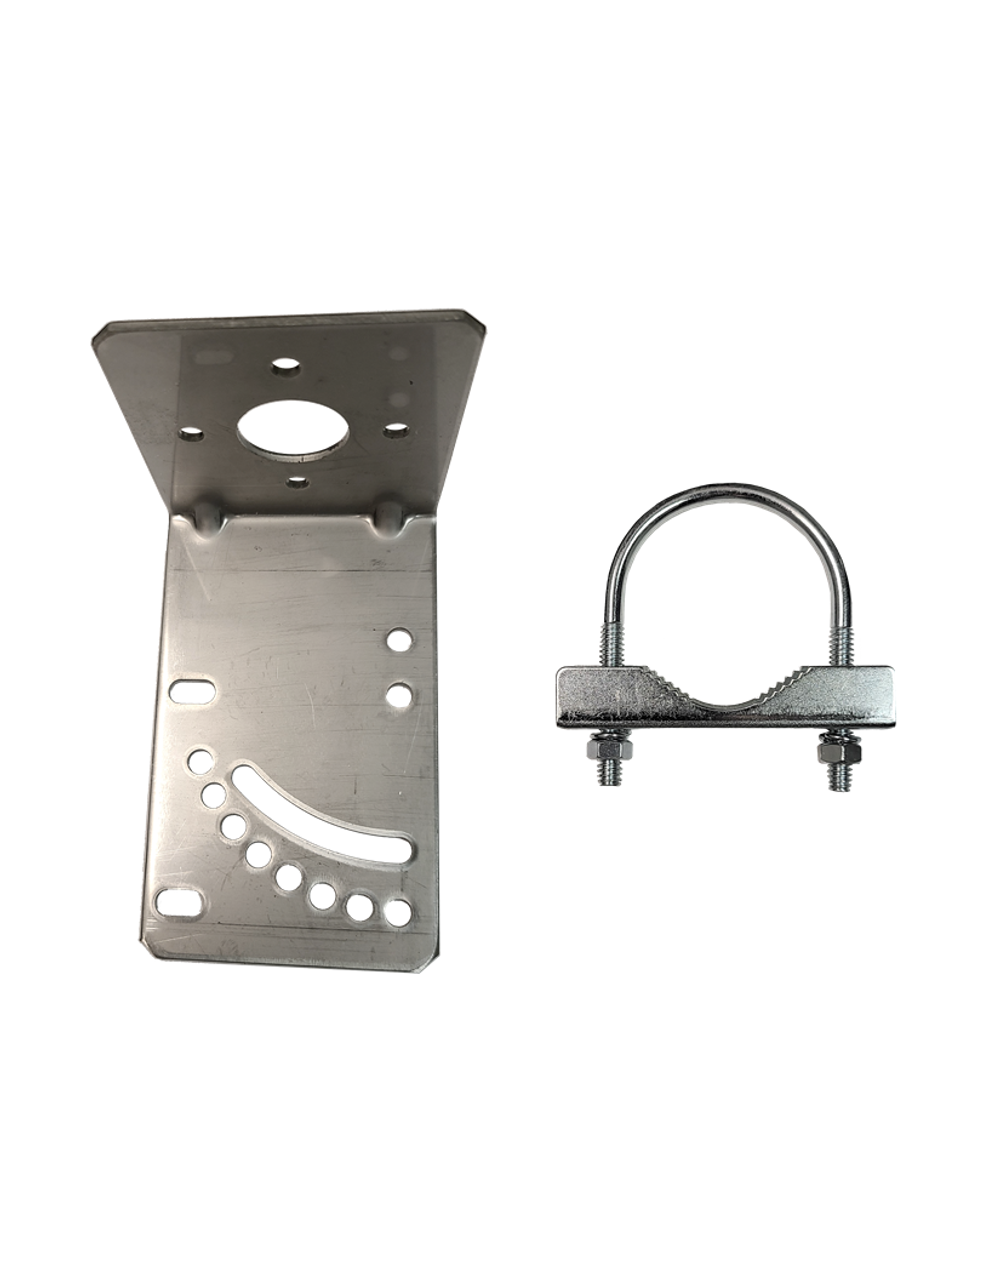 Includes L-Bracket Mounting Hardware